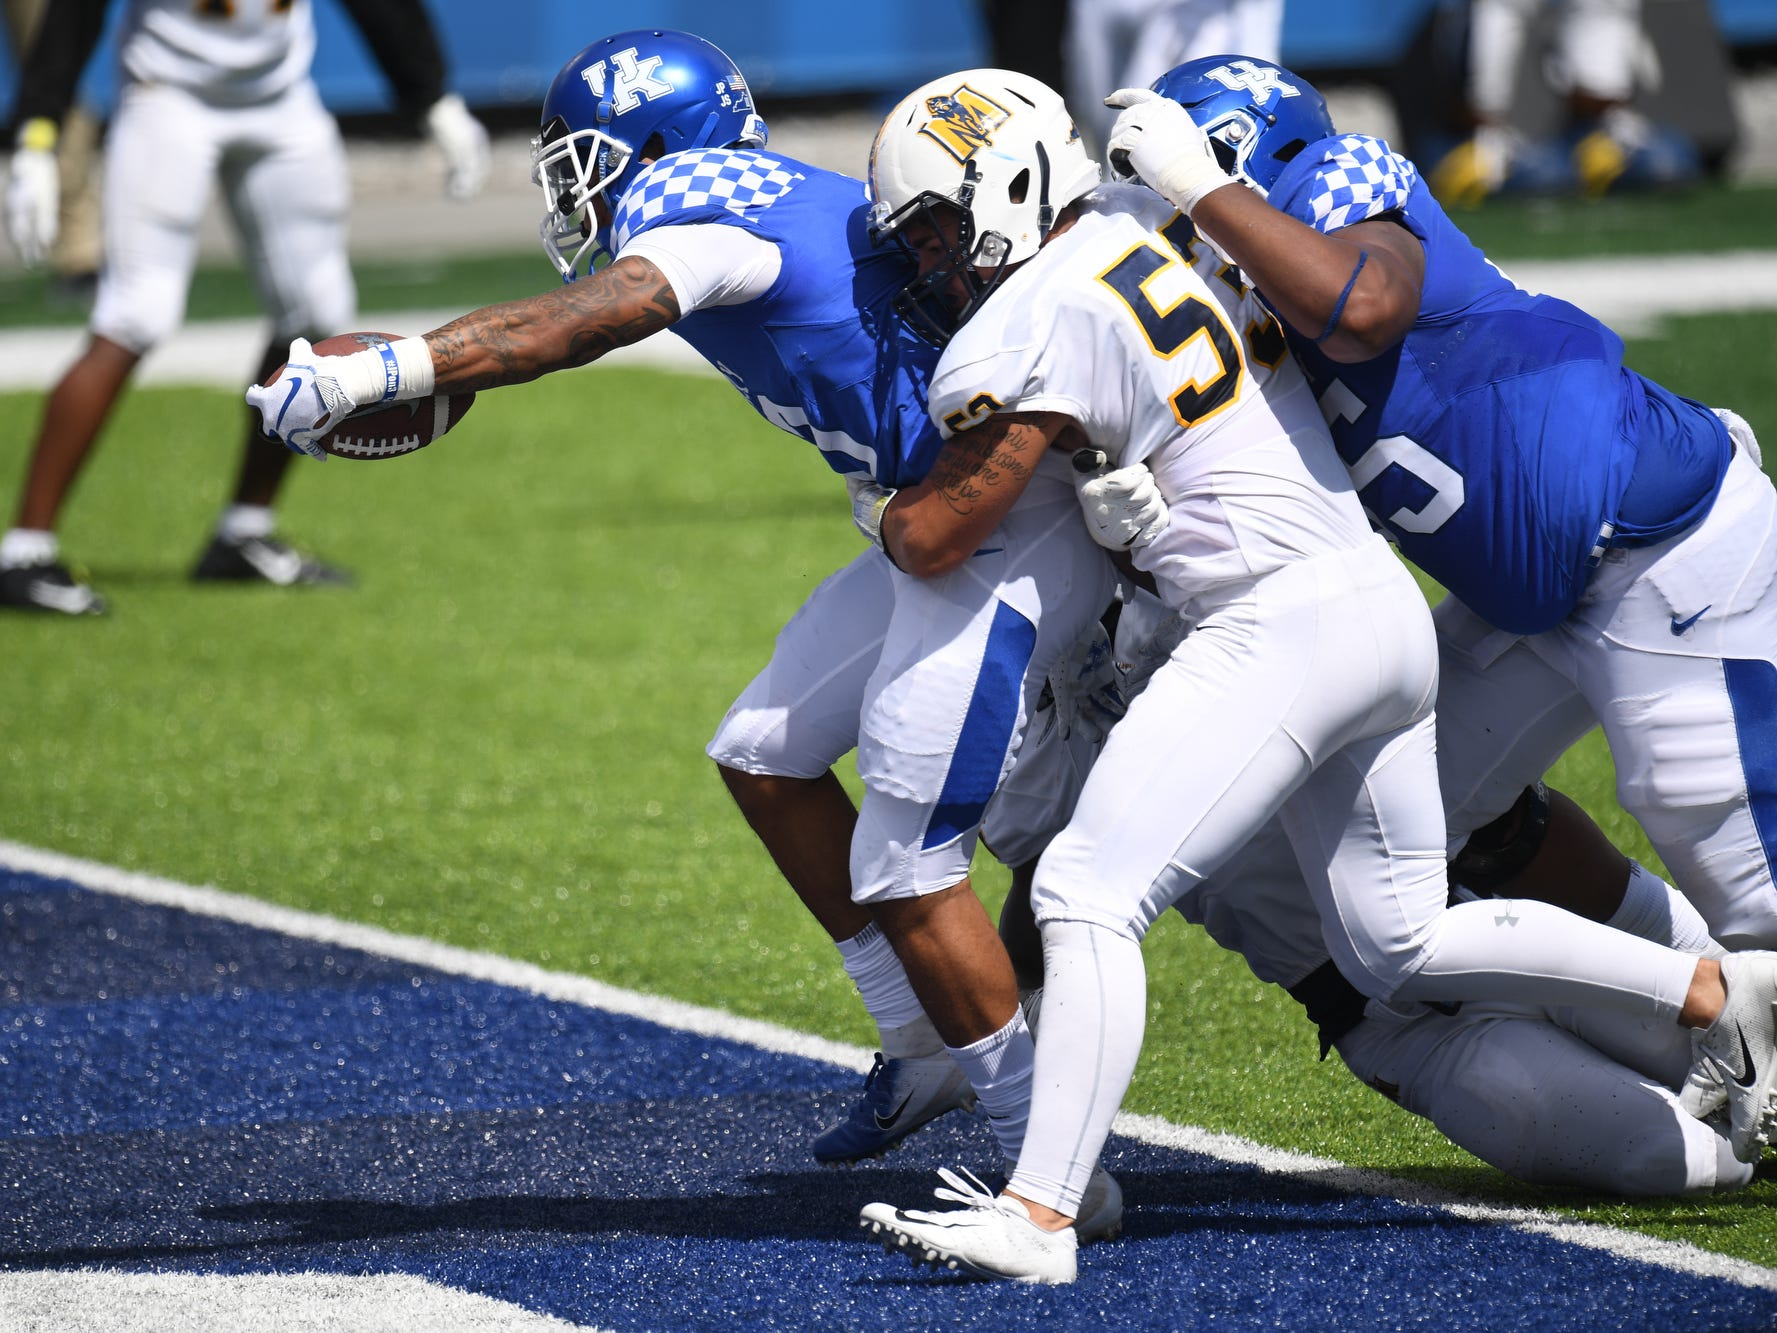 UK running back A.J. Rose scores a touchdown during the University of Kentucky football game against Murray State at Kroger Field in Lexington, Kentucky, on Saturday, Sept. 15, 2018.